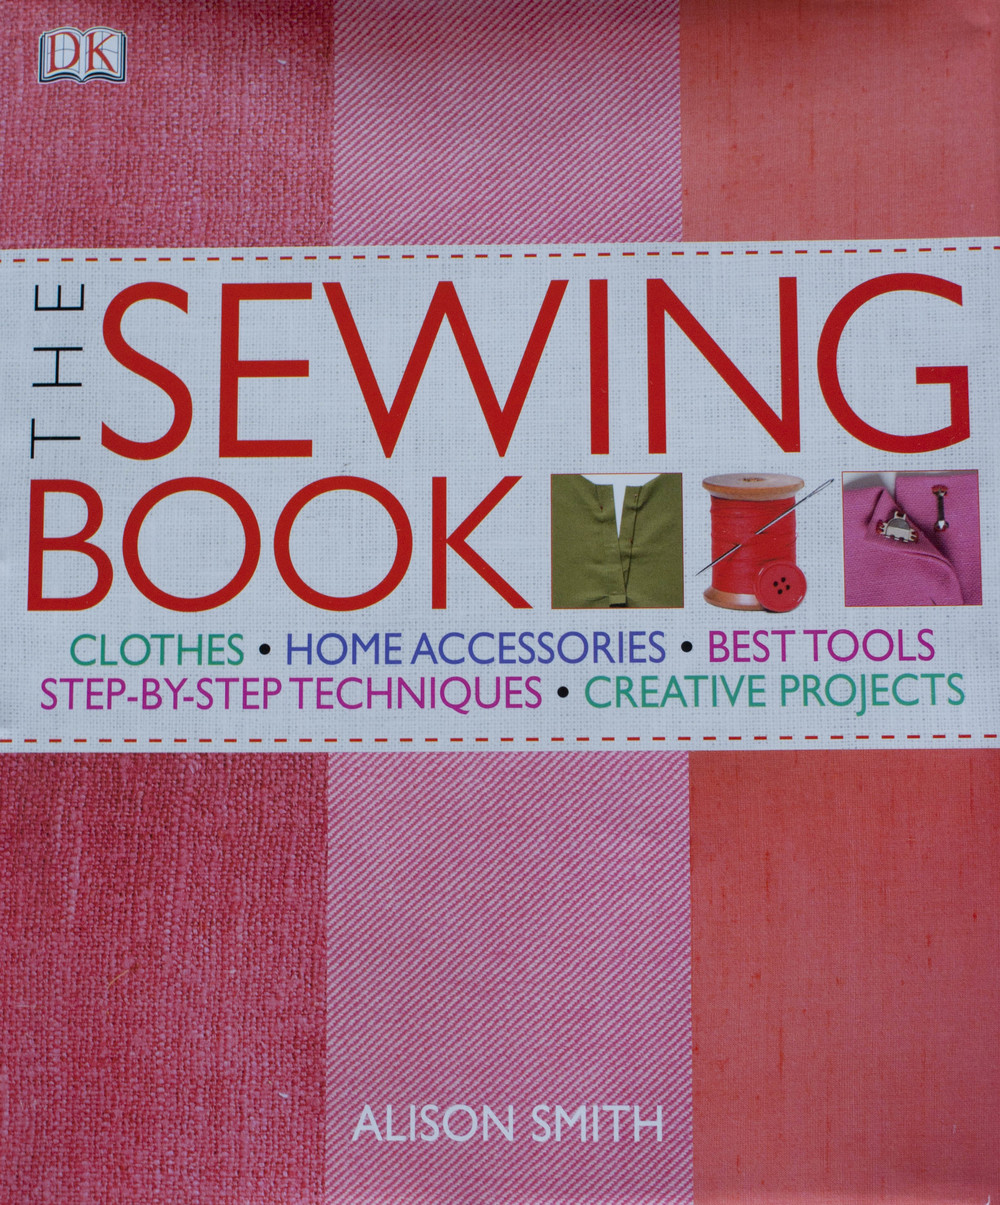 The Sewing Book.jpg